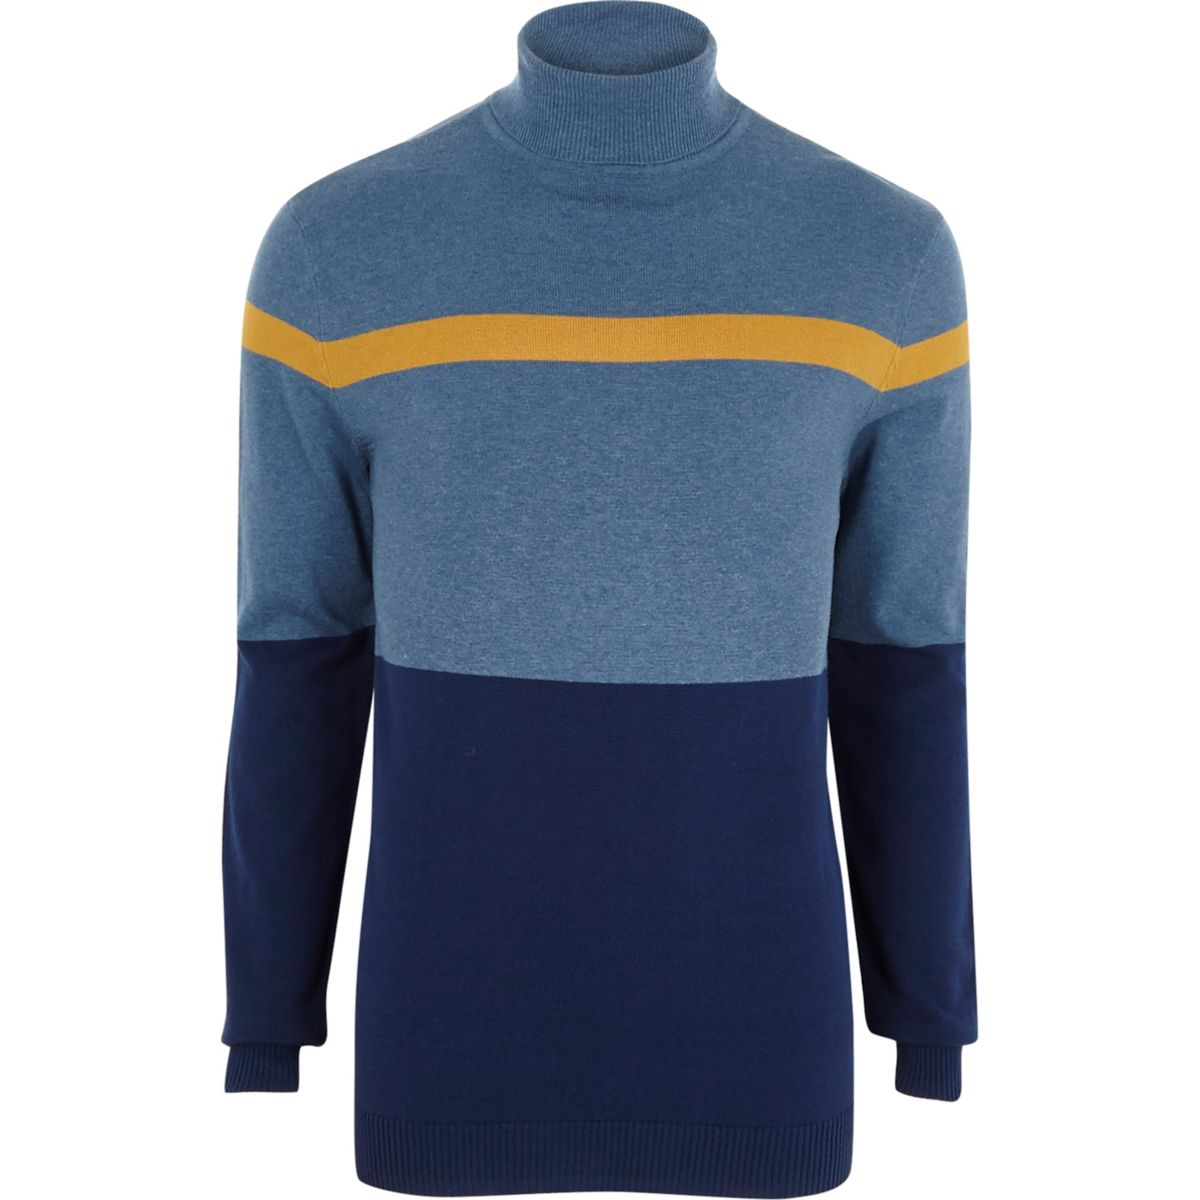 Blue color block roll neck sweater